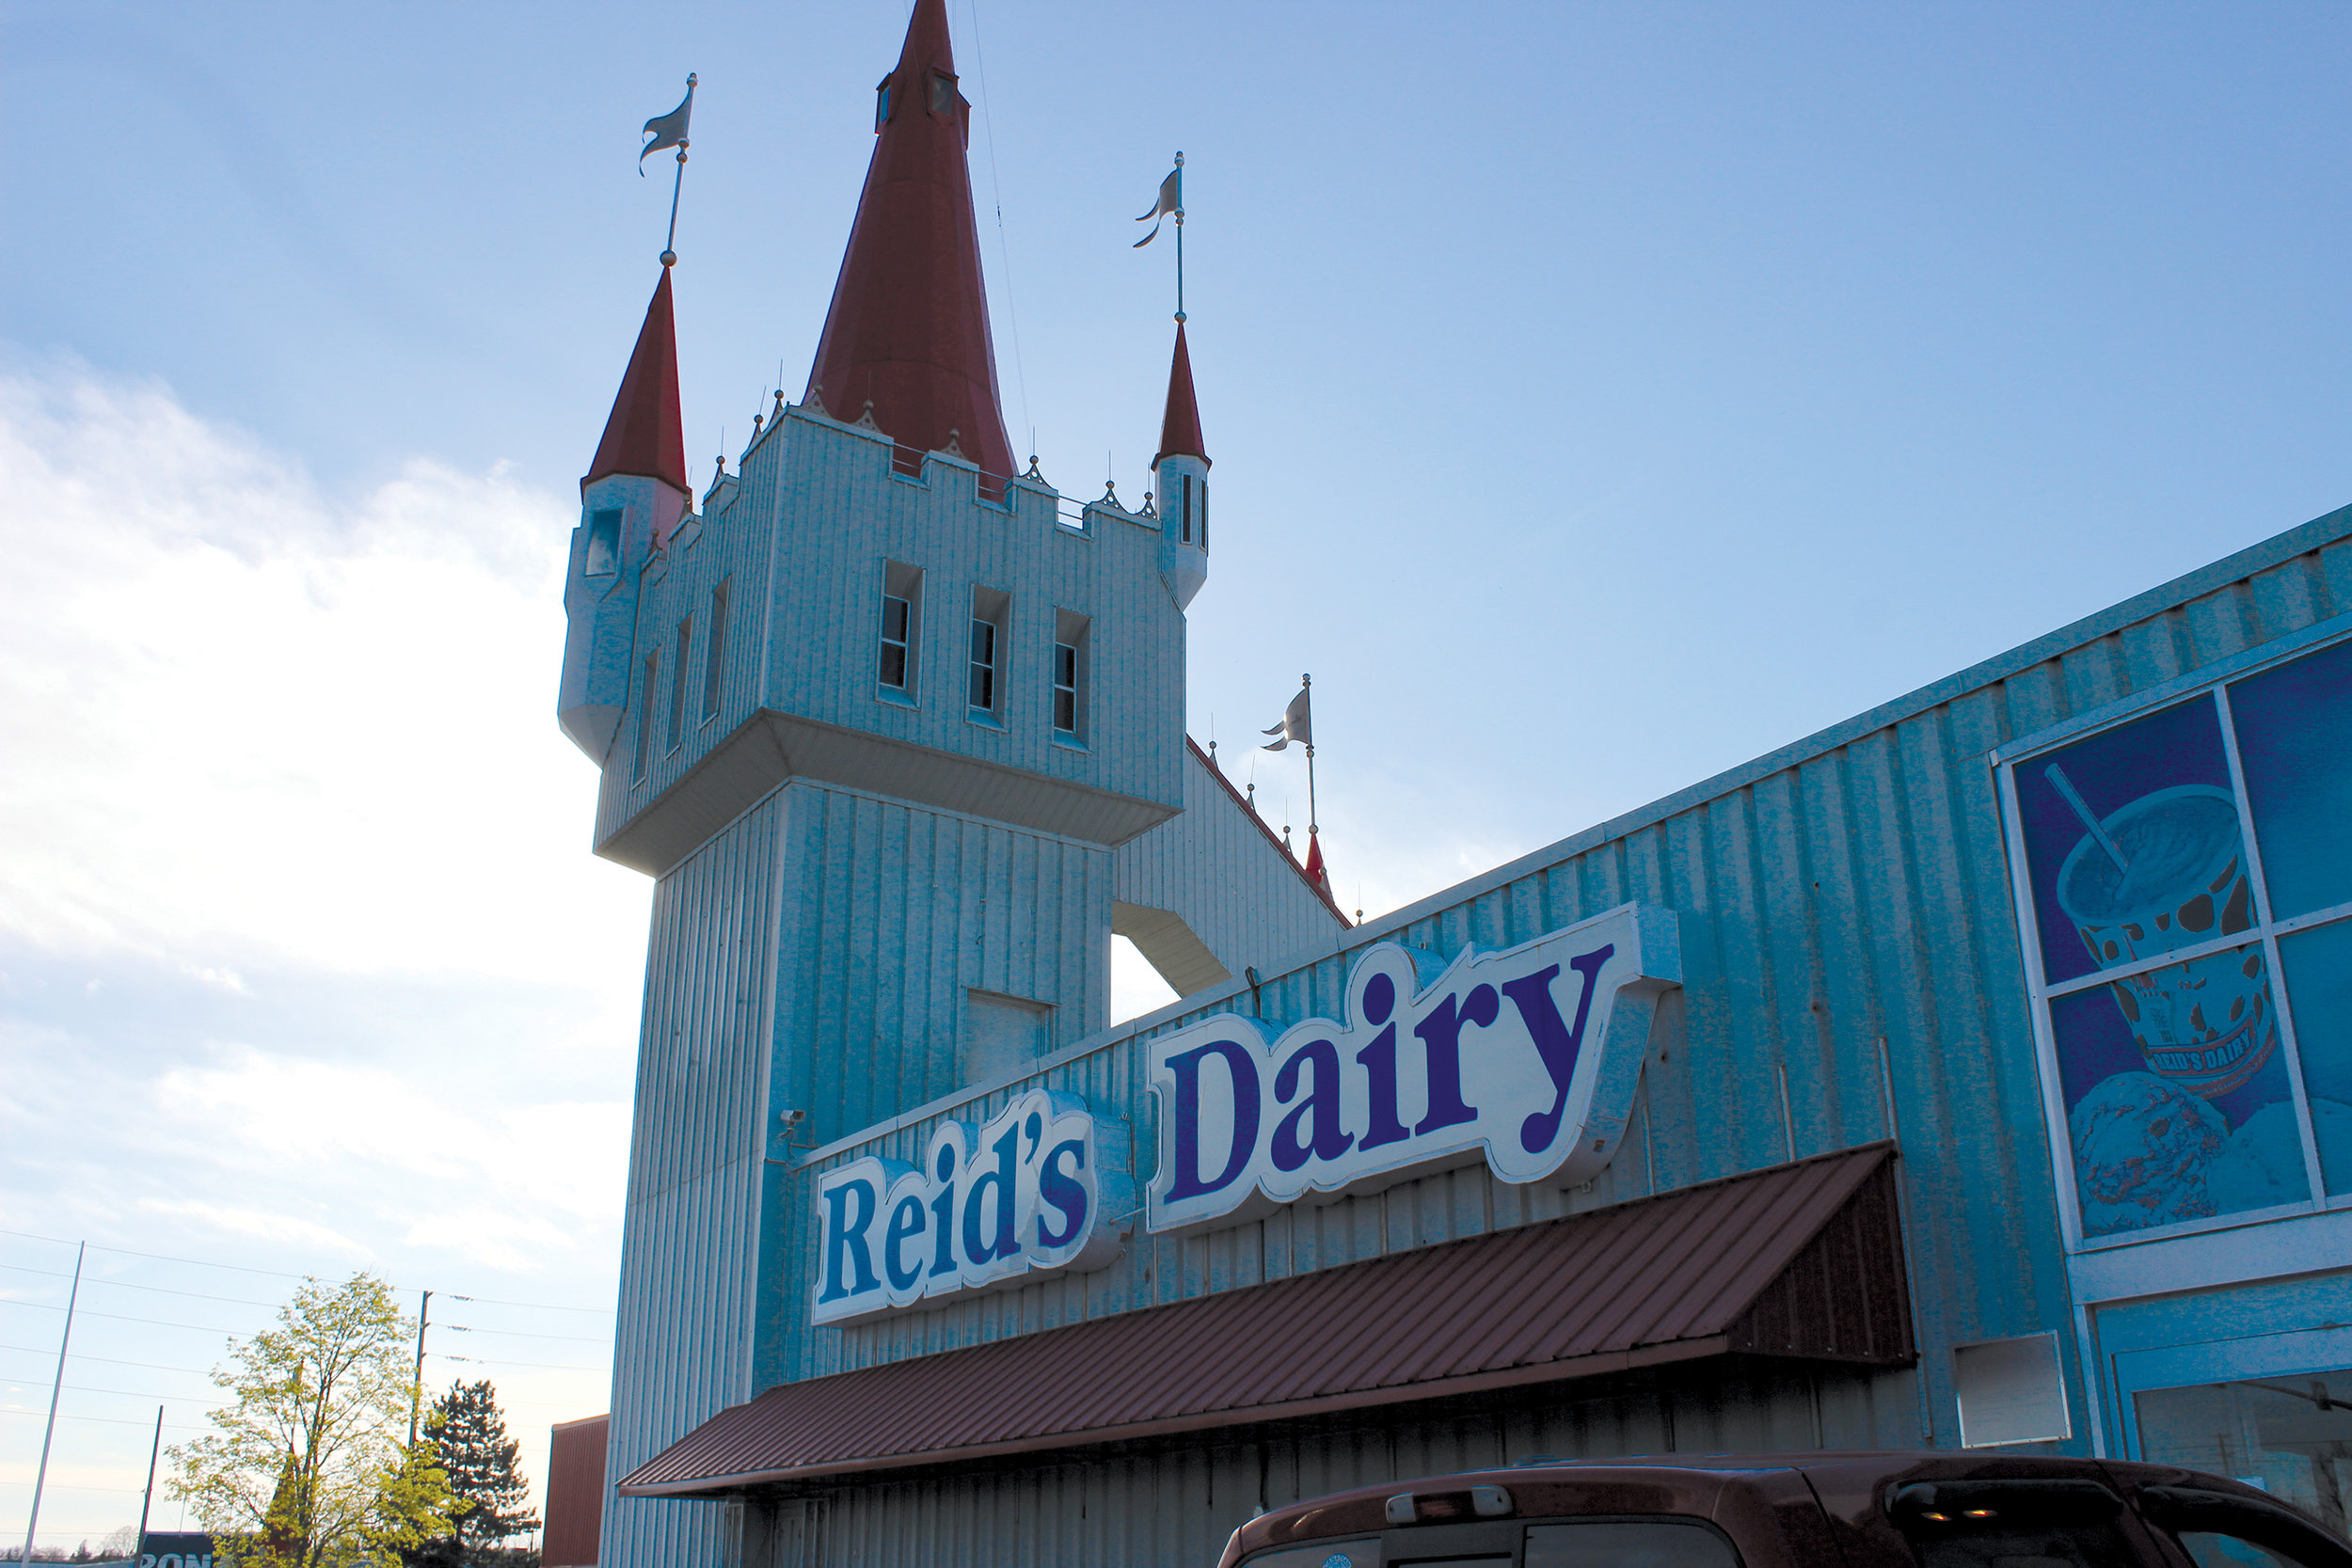 This unmistakable tower indicating the Reid's Dairy outlet is a particular Belleville favourite stop. Photo by James Kerr.